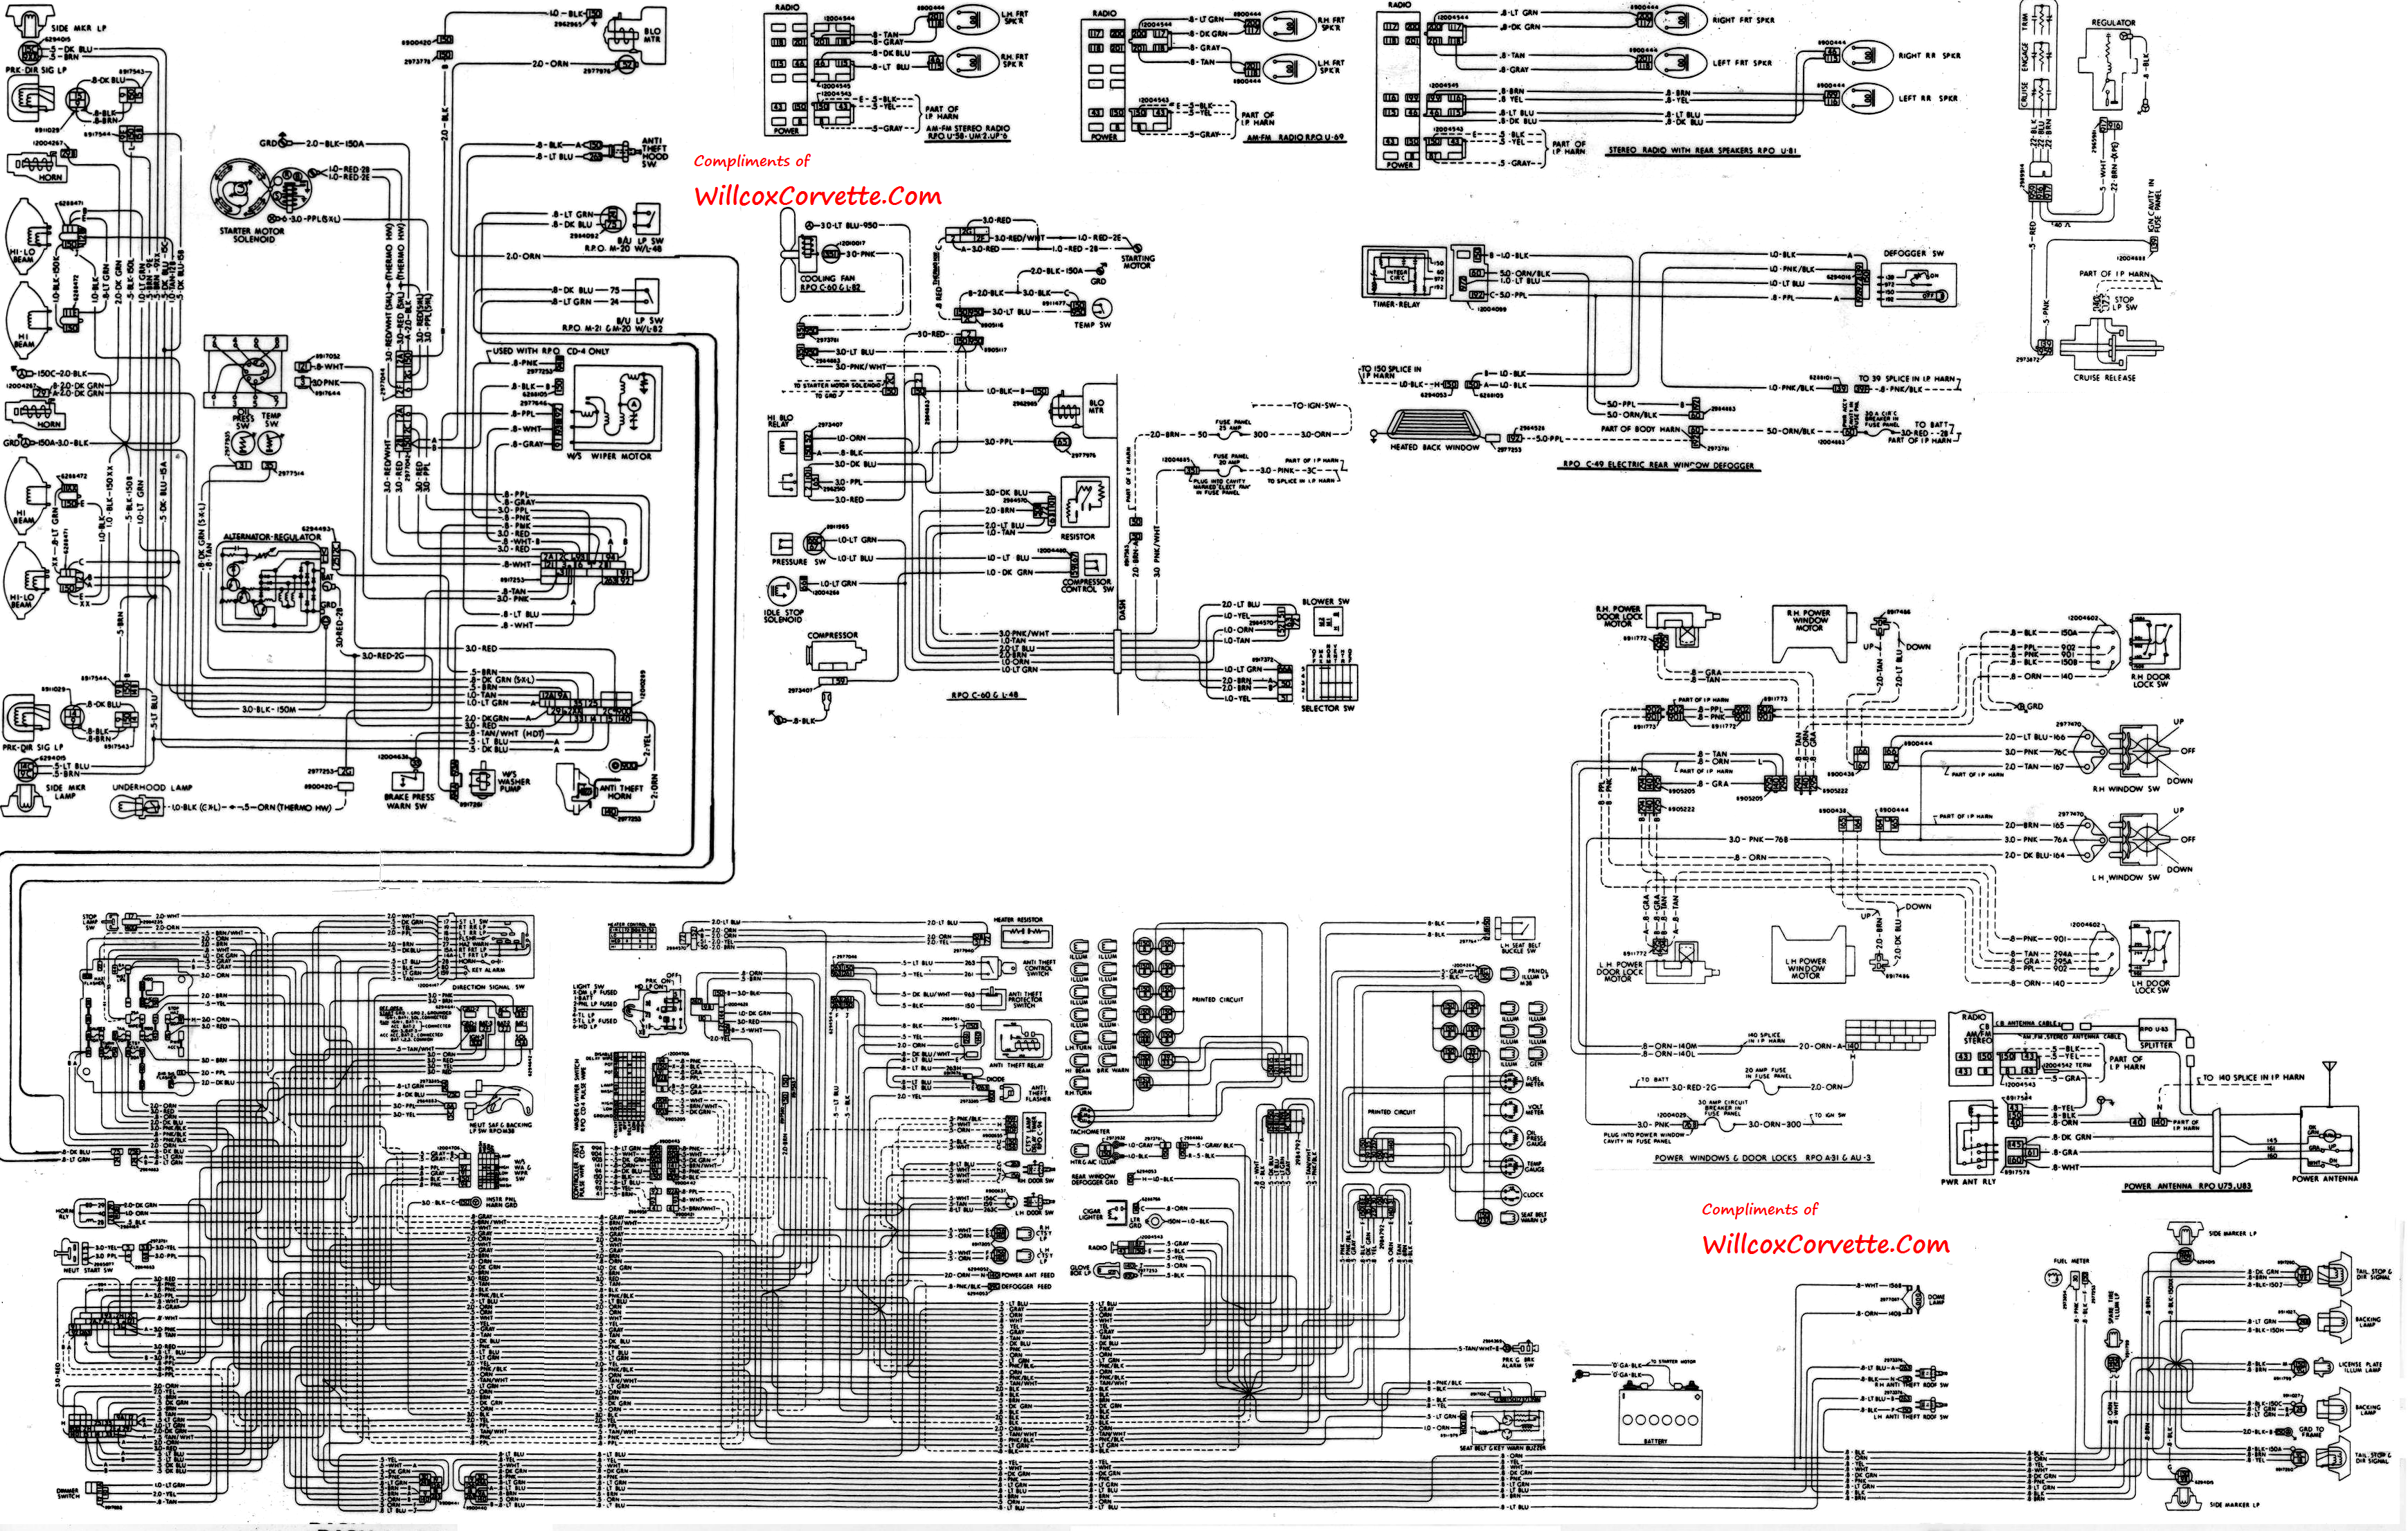 1972 Corvette Dash Wiring Diagram - We.davidforlife.de • on 1989 corvette fuel pump wiring, 1988 corvette fuel pump wiring, 1985 corvette fuel pump wiring, 1992 corvette fuel pump wiring, 1987 corvette fuel pump wiring,